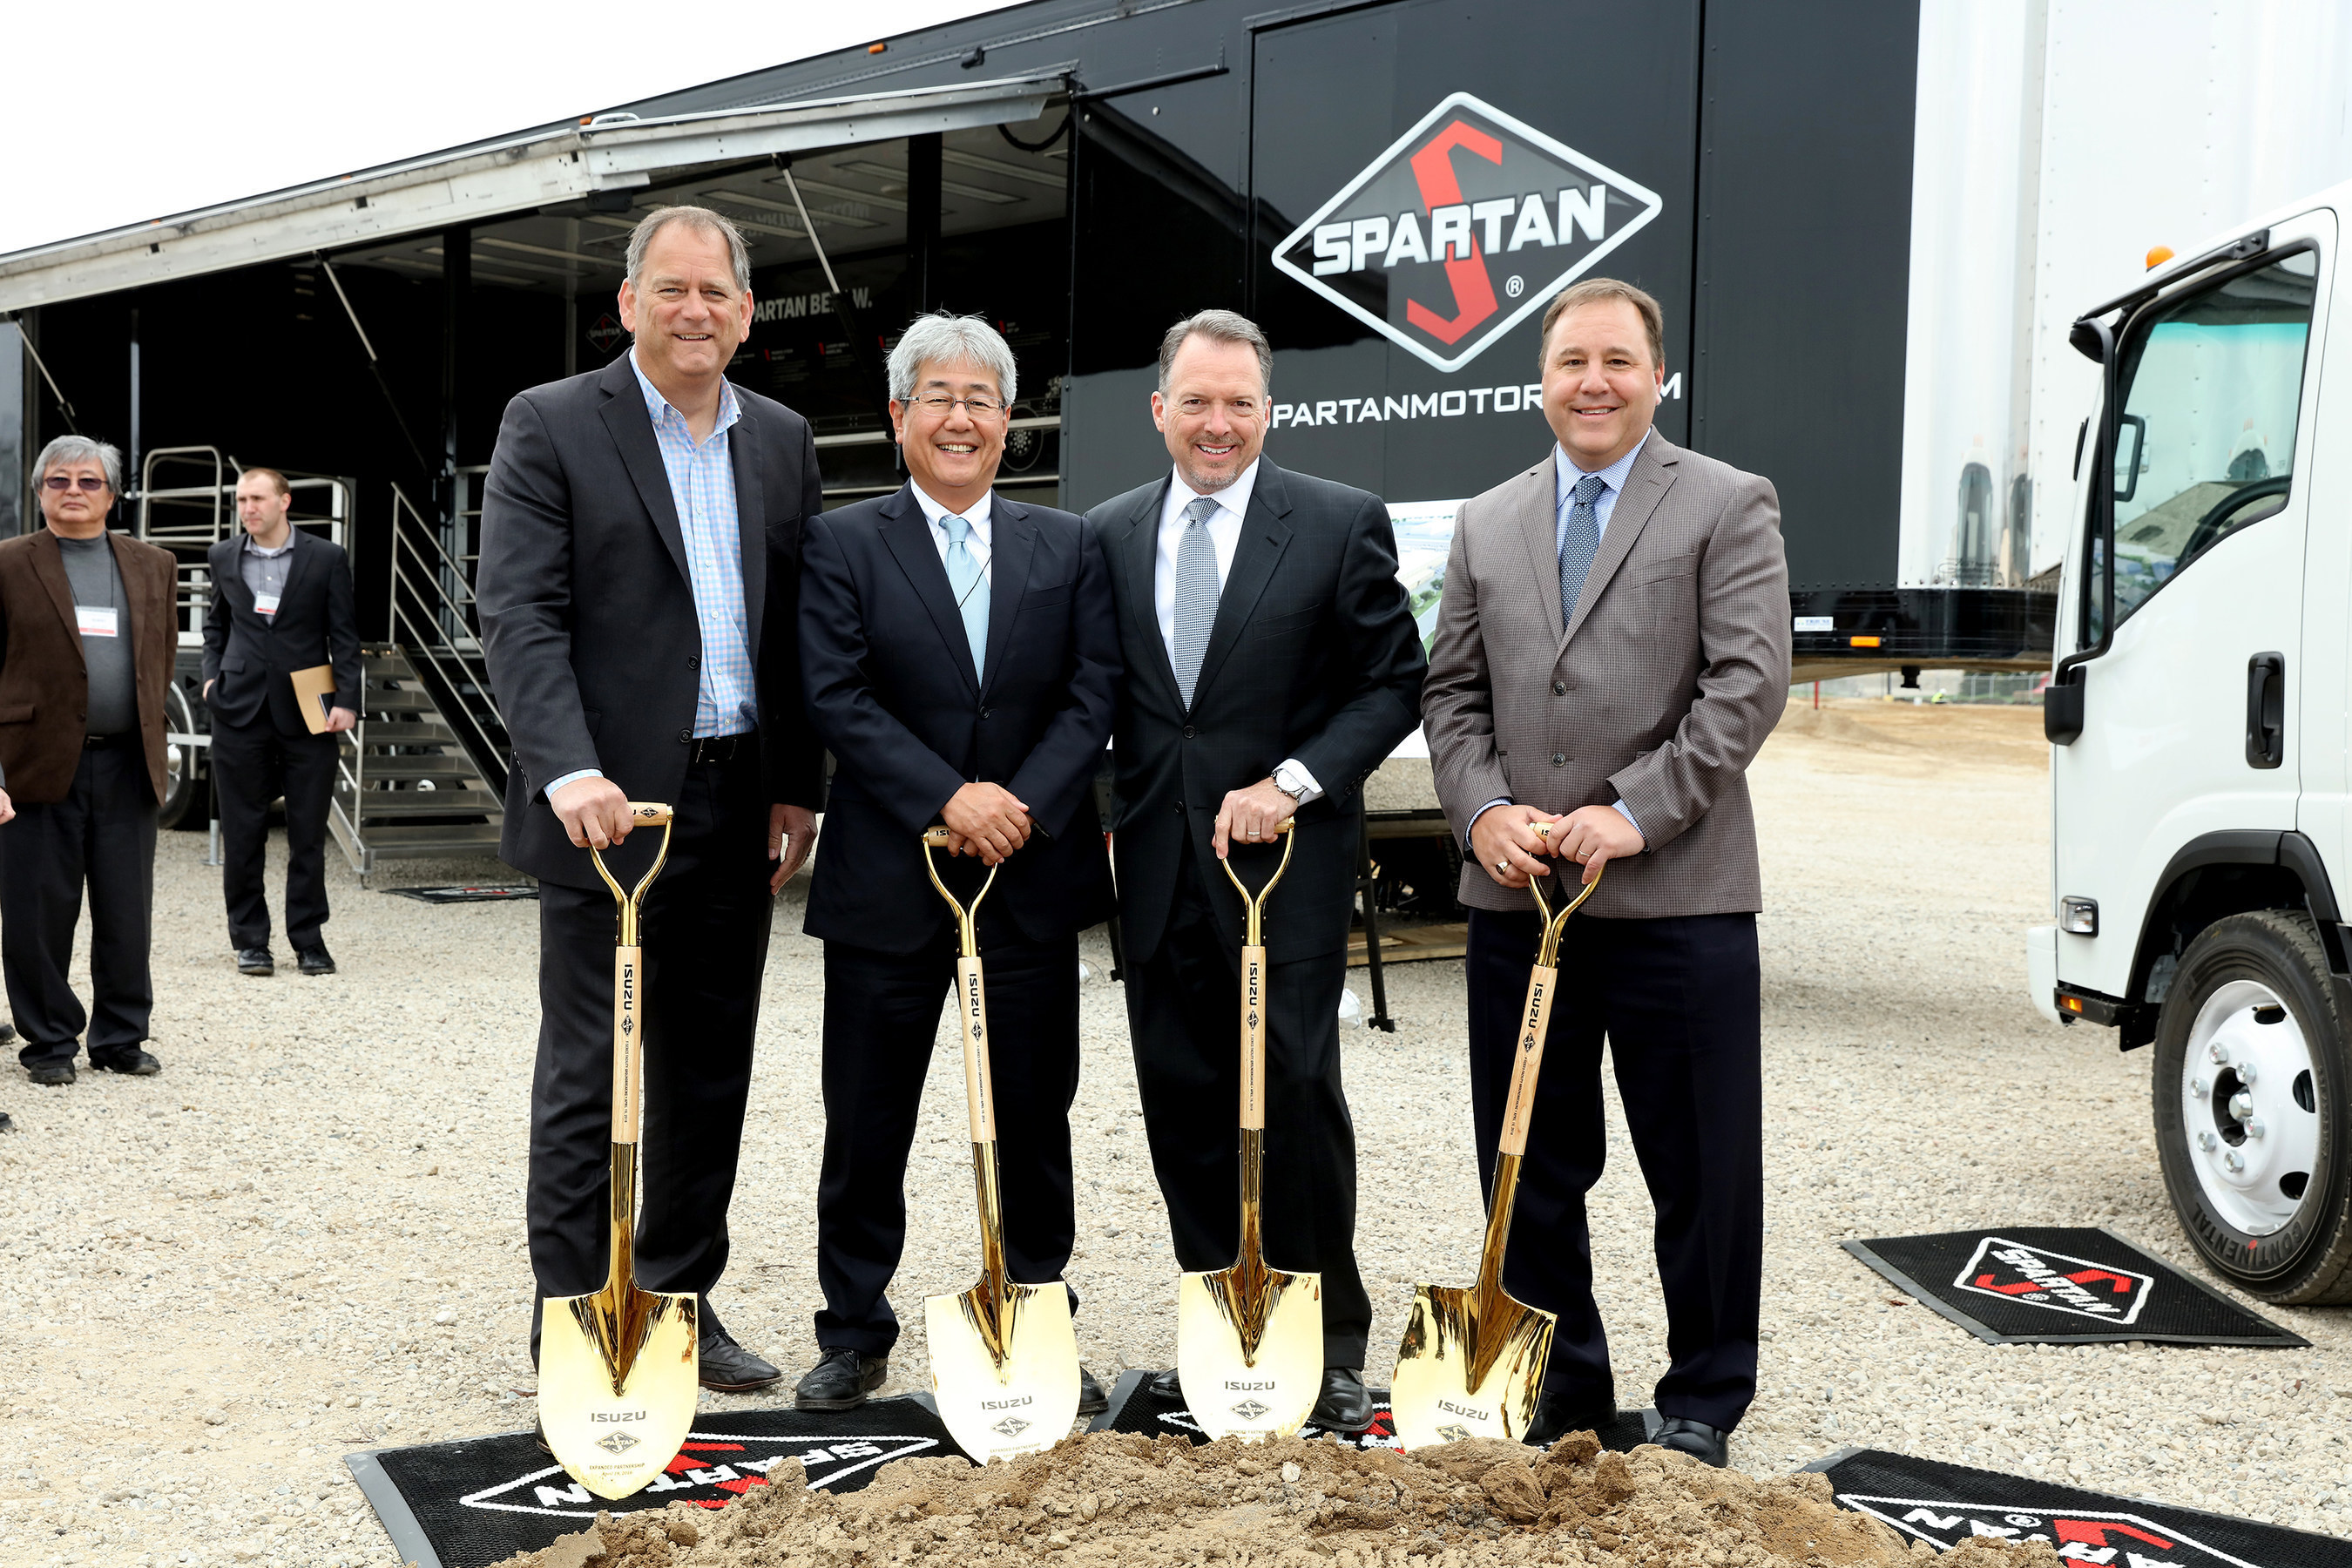 Spartan Motors Held Groundbreaking Ceremony for New Truck Assembly Plant